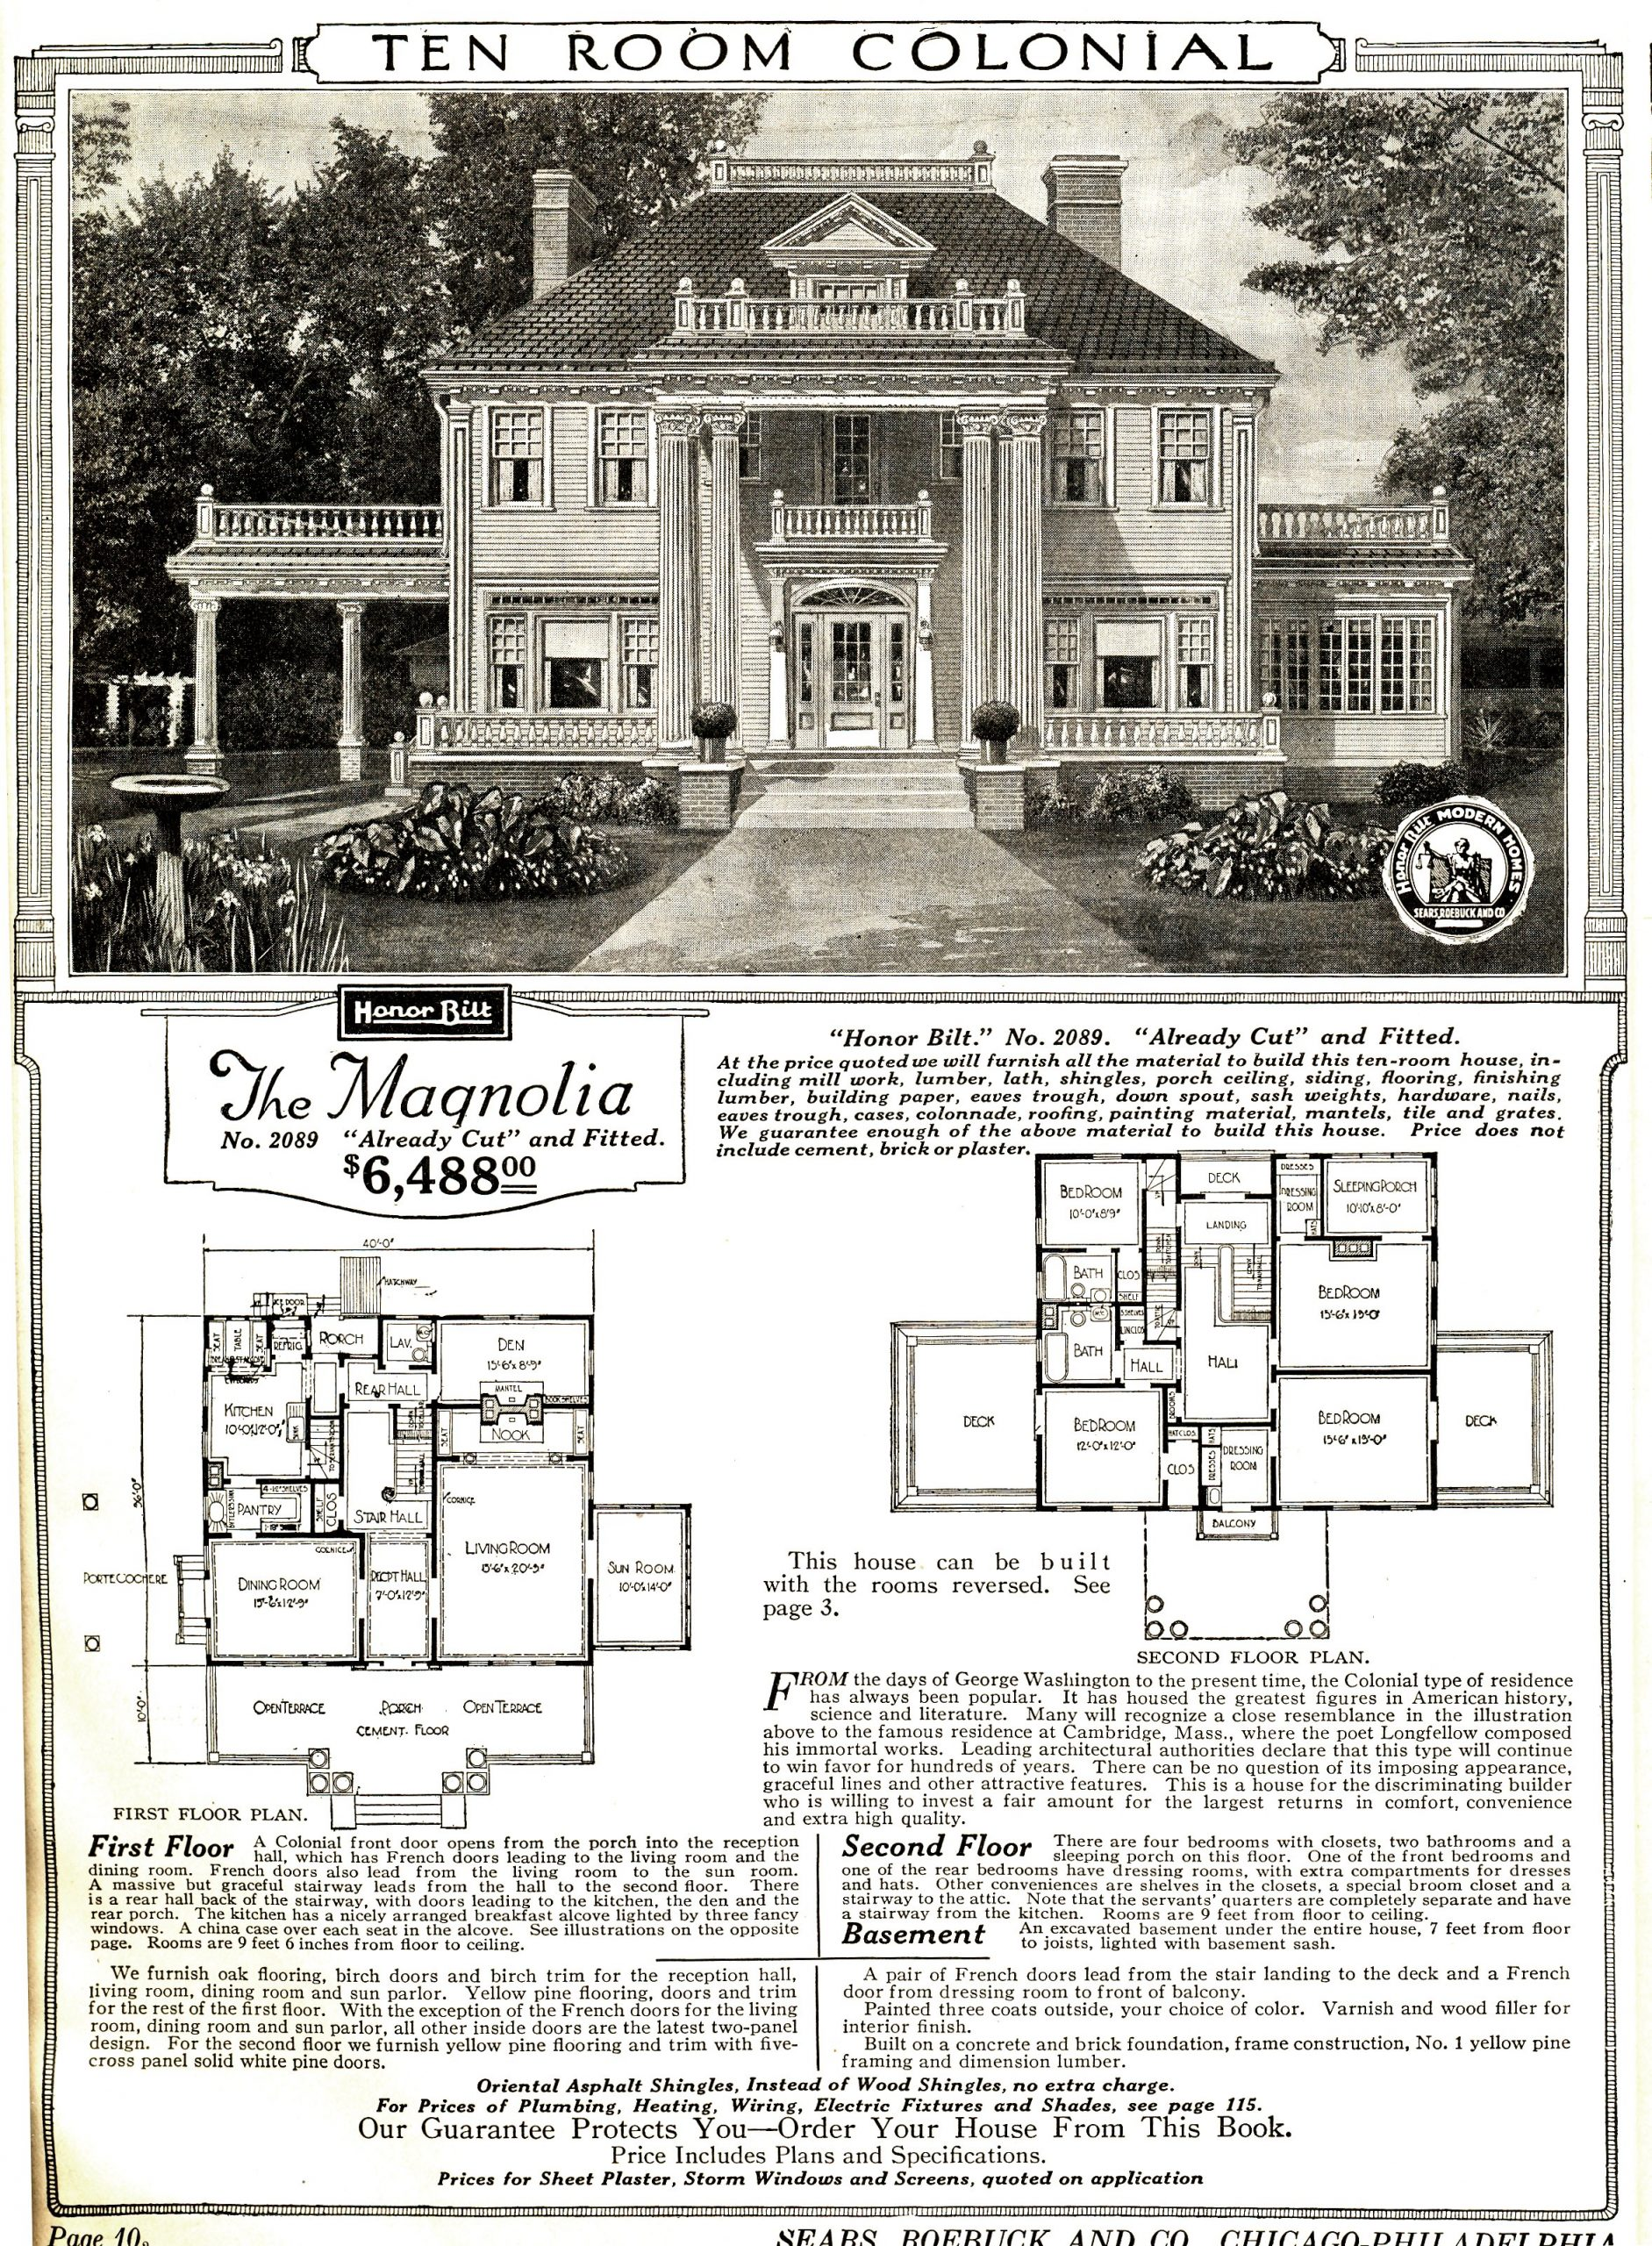 Sears Modern Home catalog page